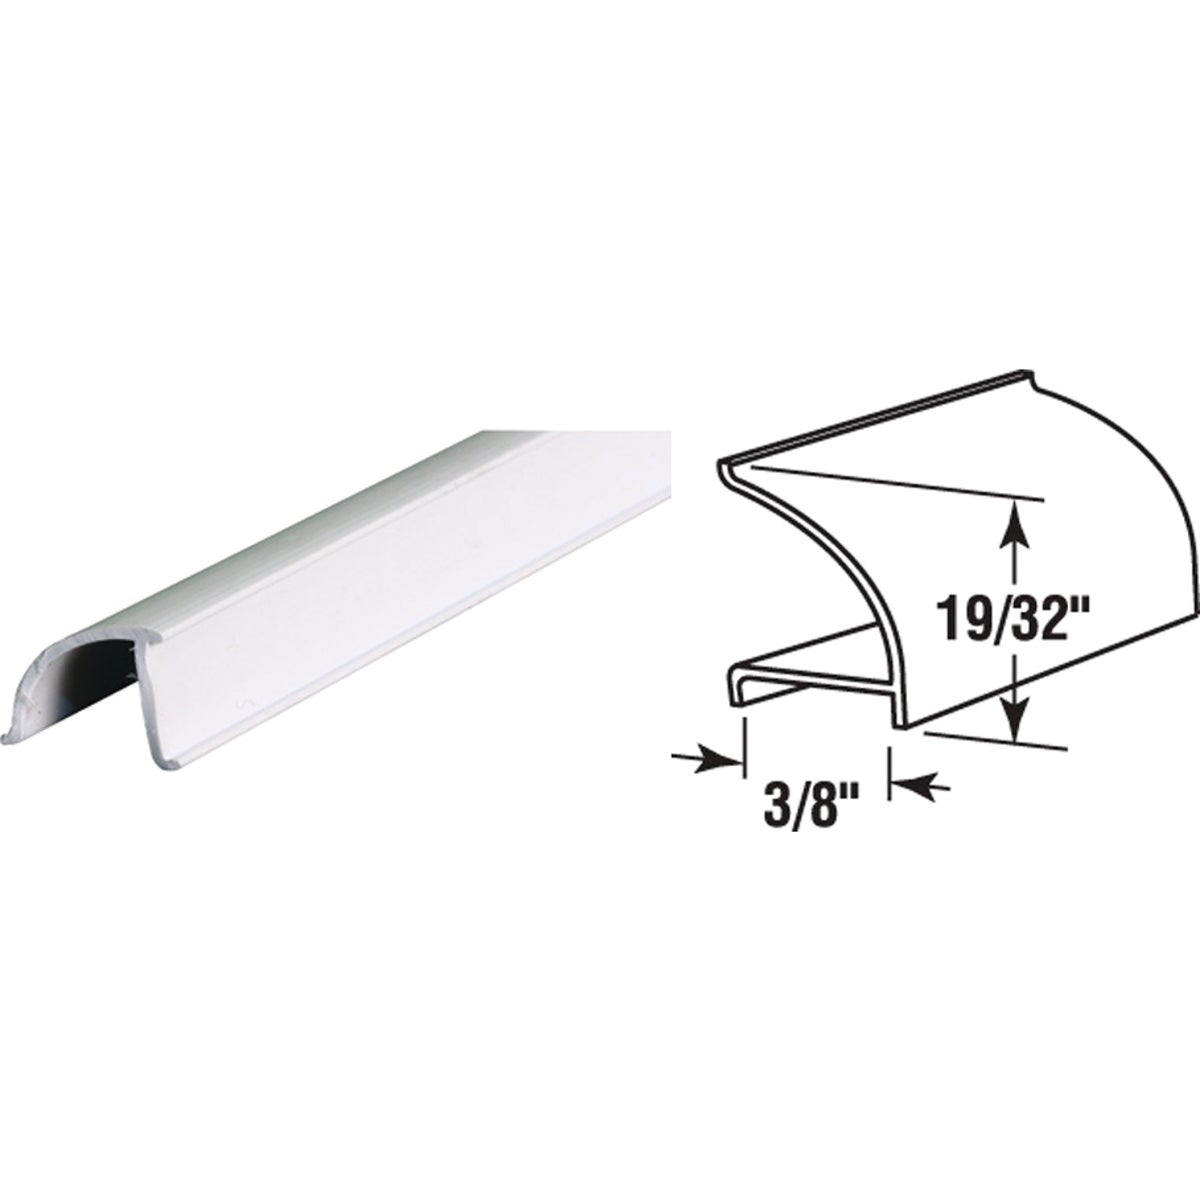 "72"" WHT RIGID SPLINE - P7867 by Prime Line Products"